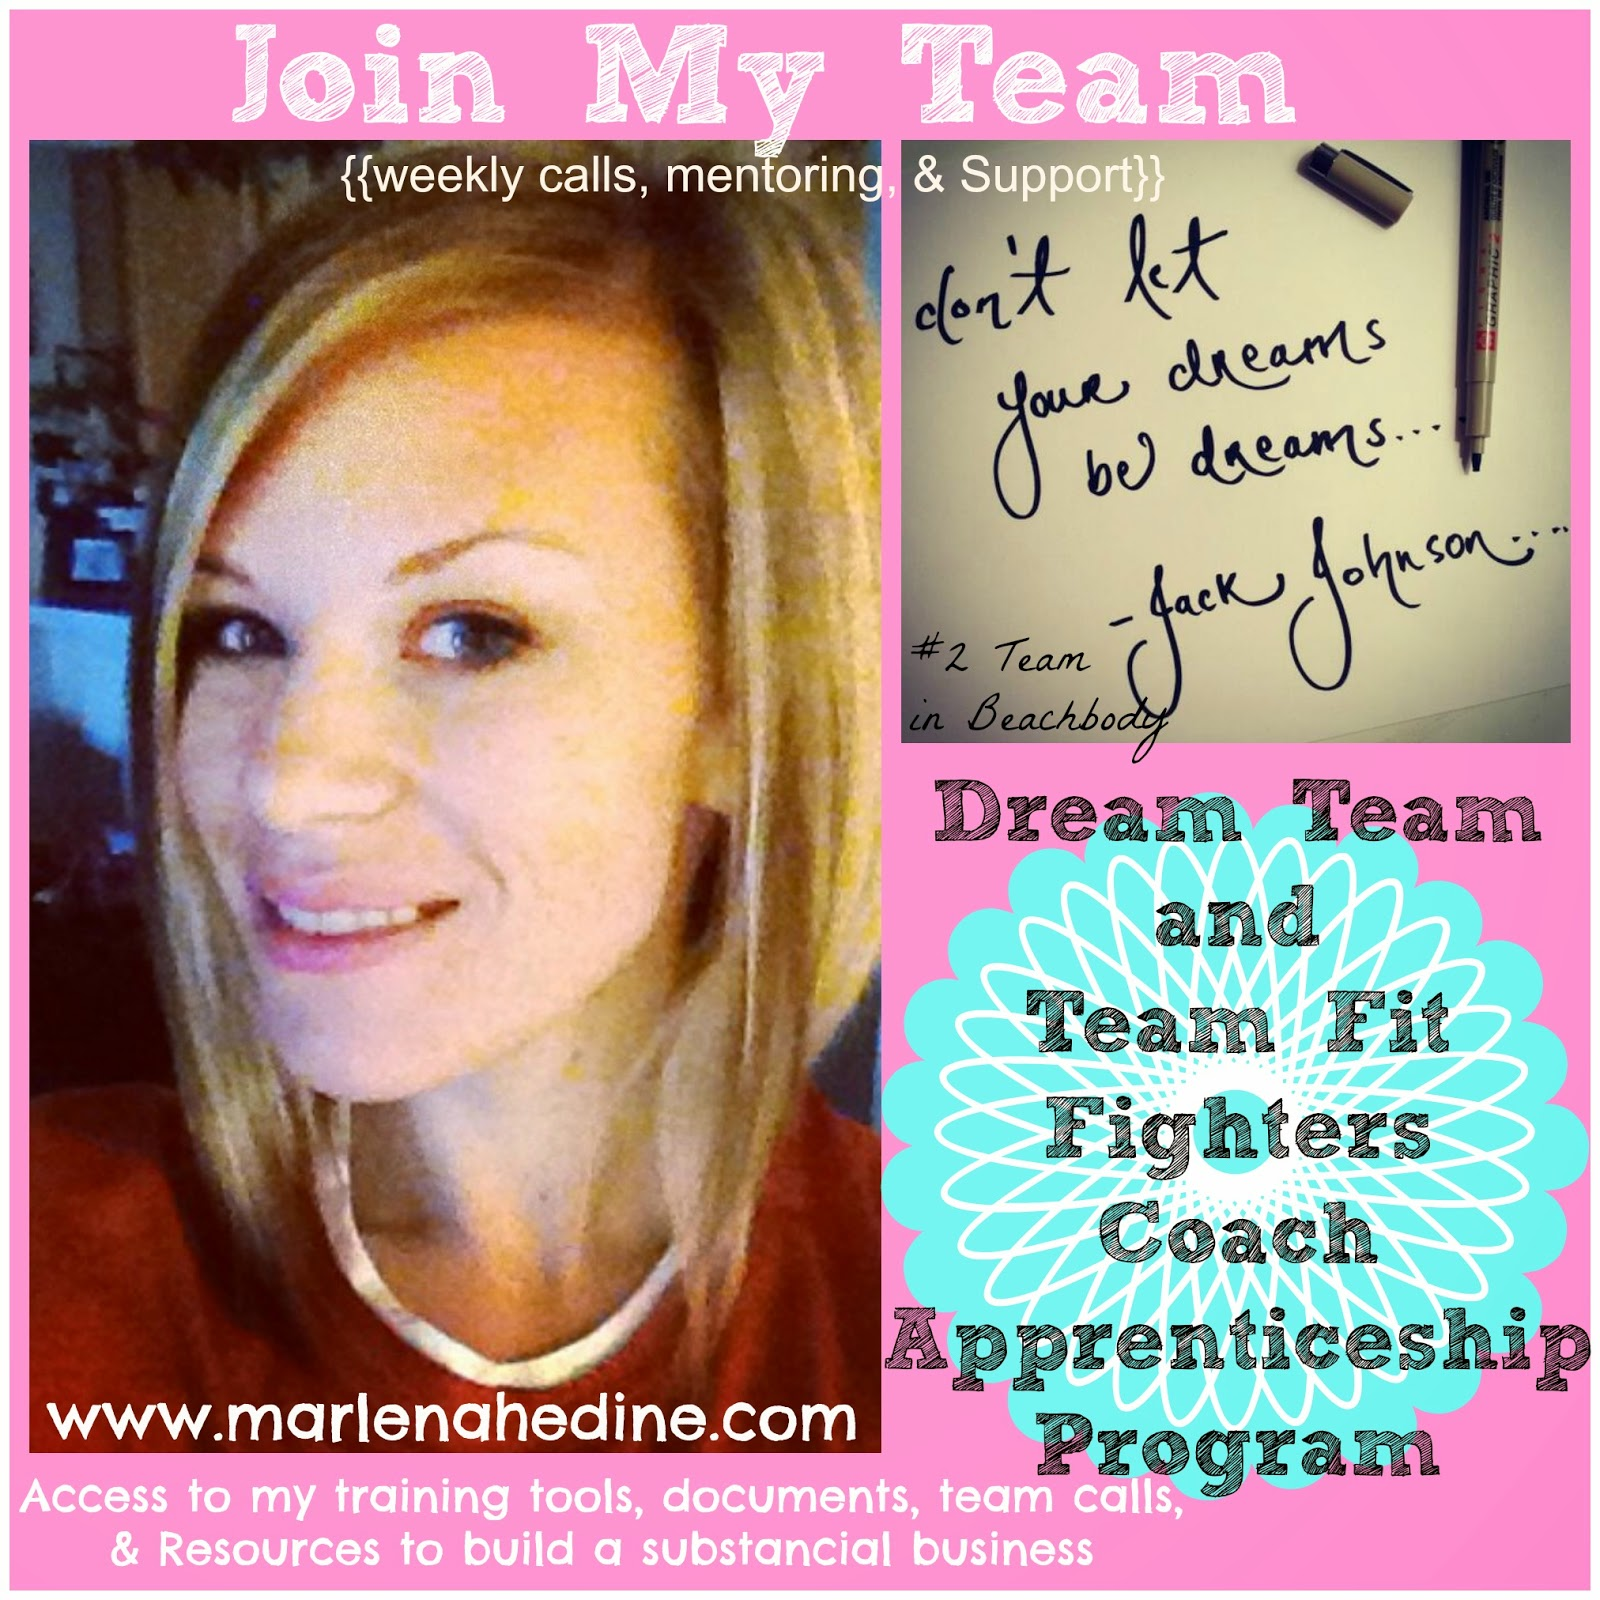 coach apprenticeship program, work from home, stay at home and work, make money from home